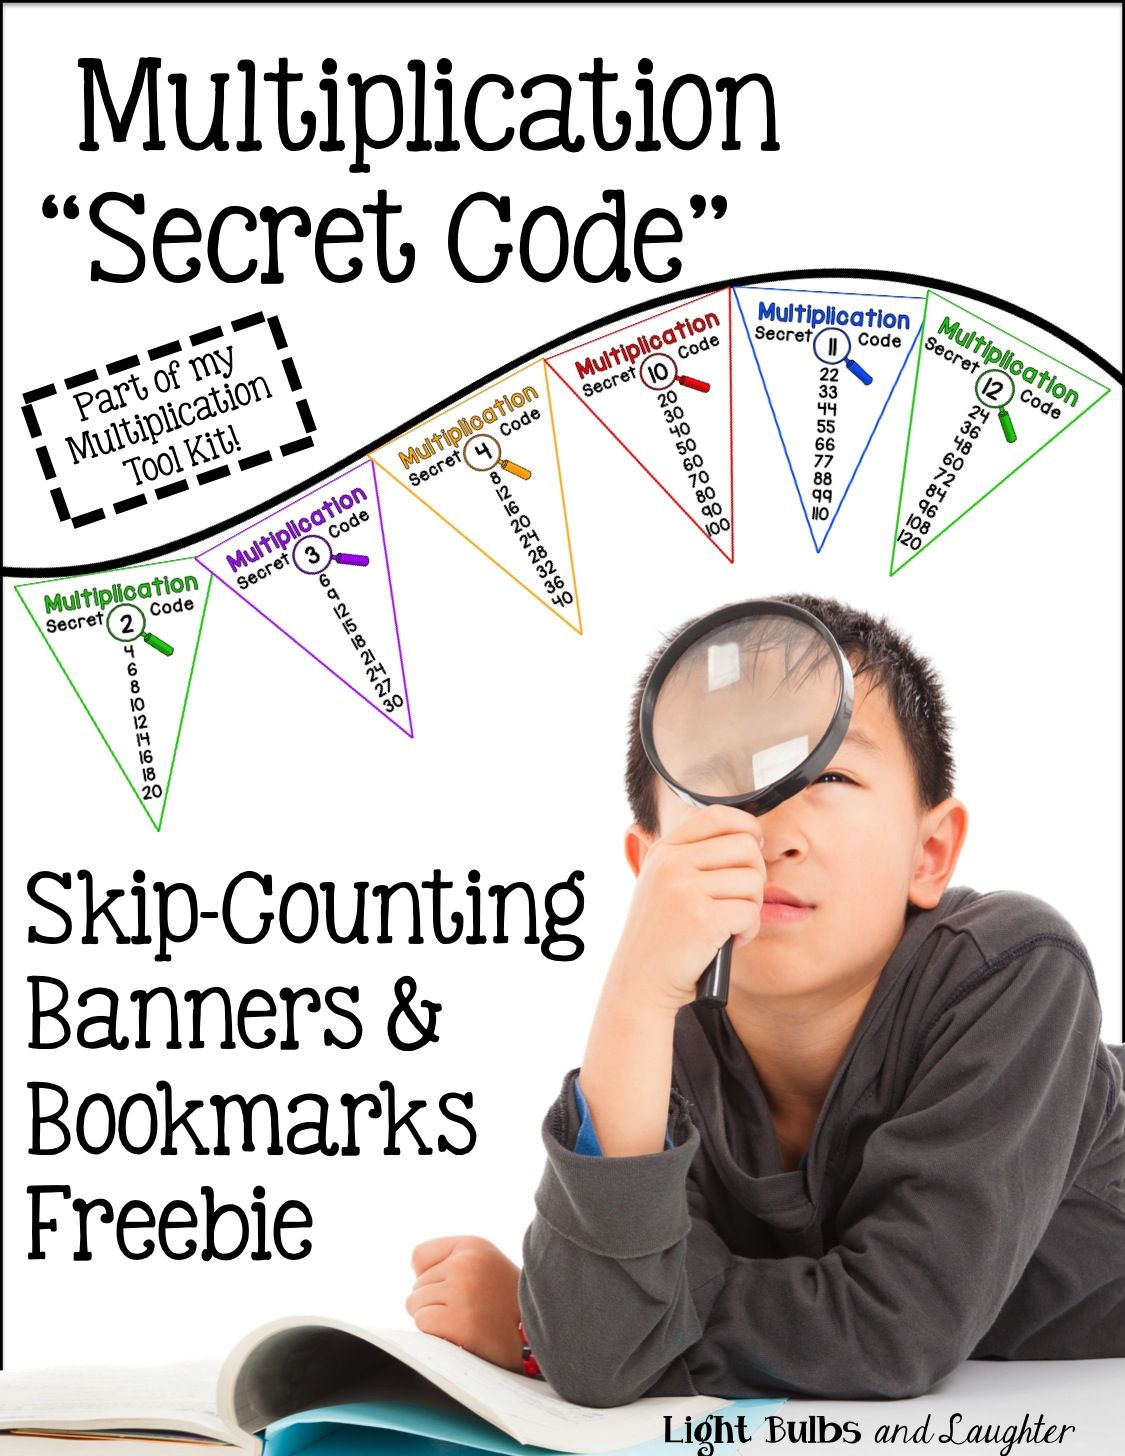 Unlocking The Secret Code Of Multiplication Memorization Light Bulbs And Laughter